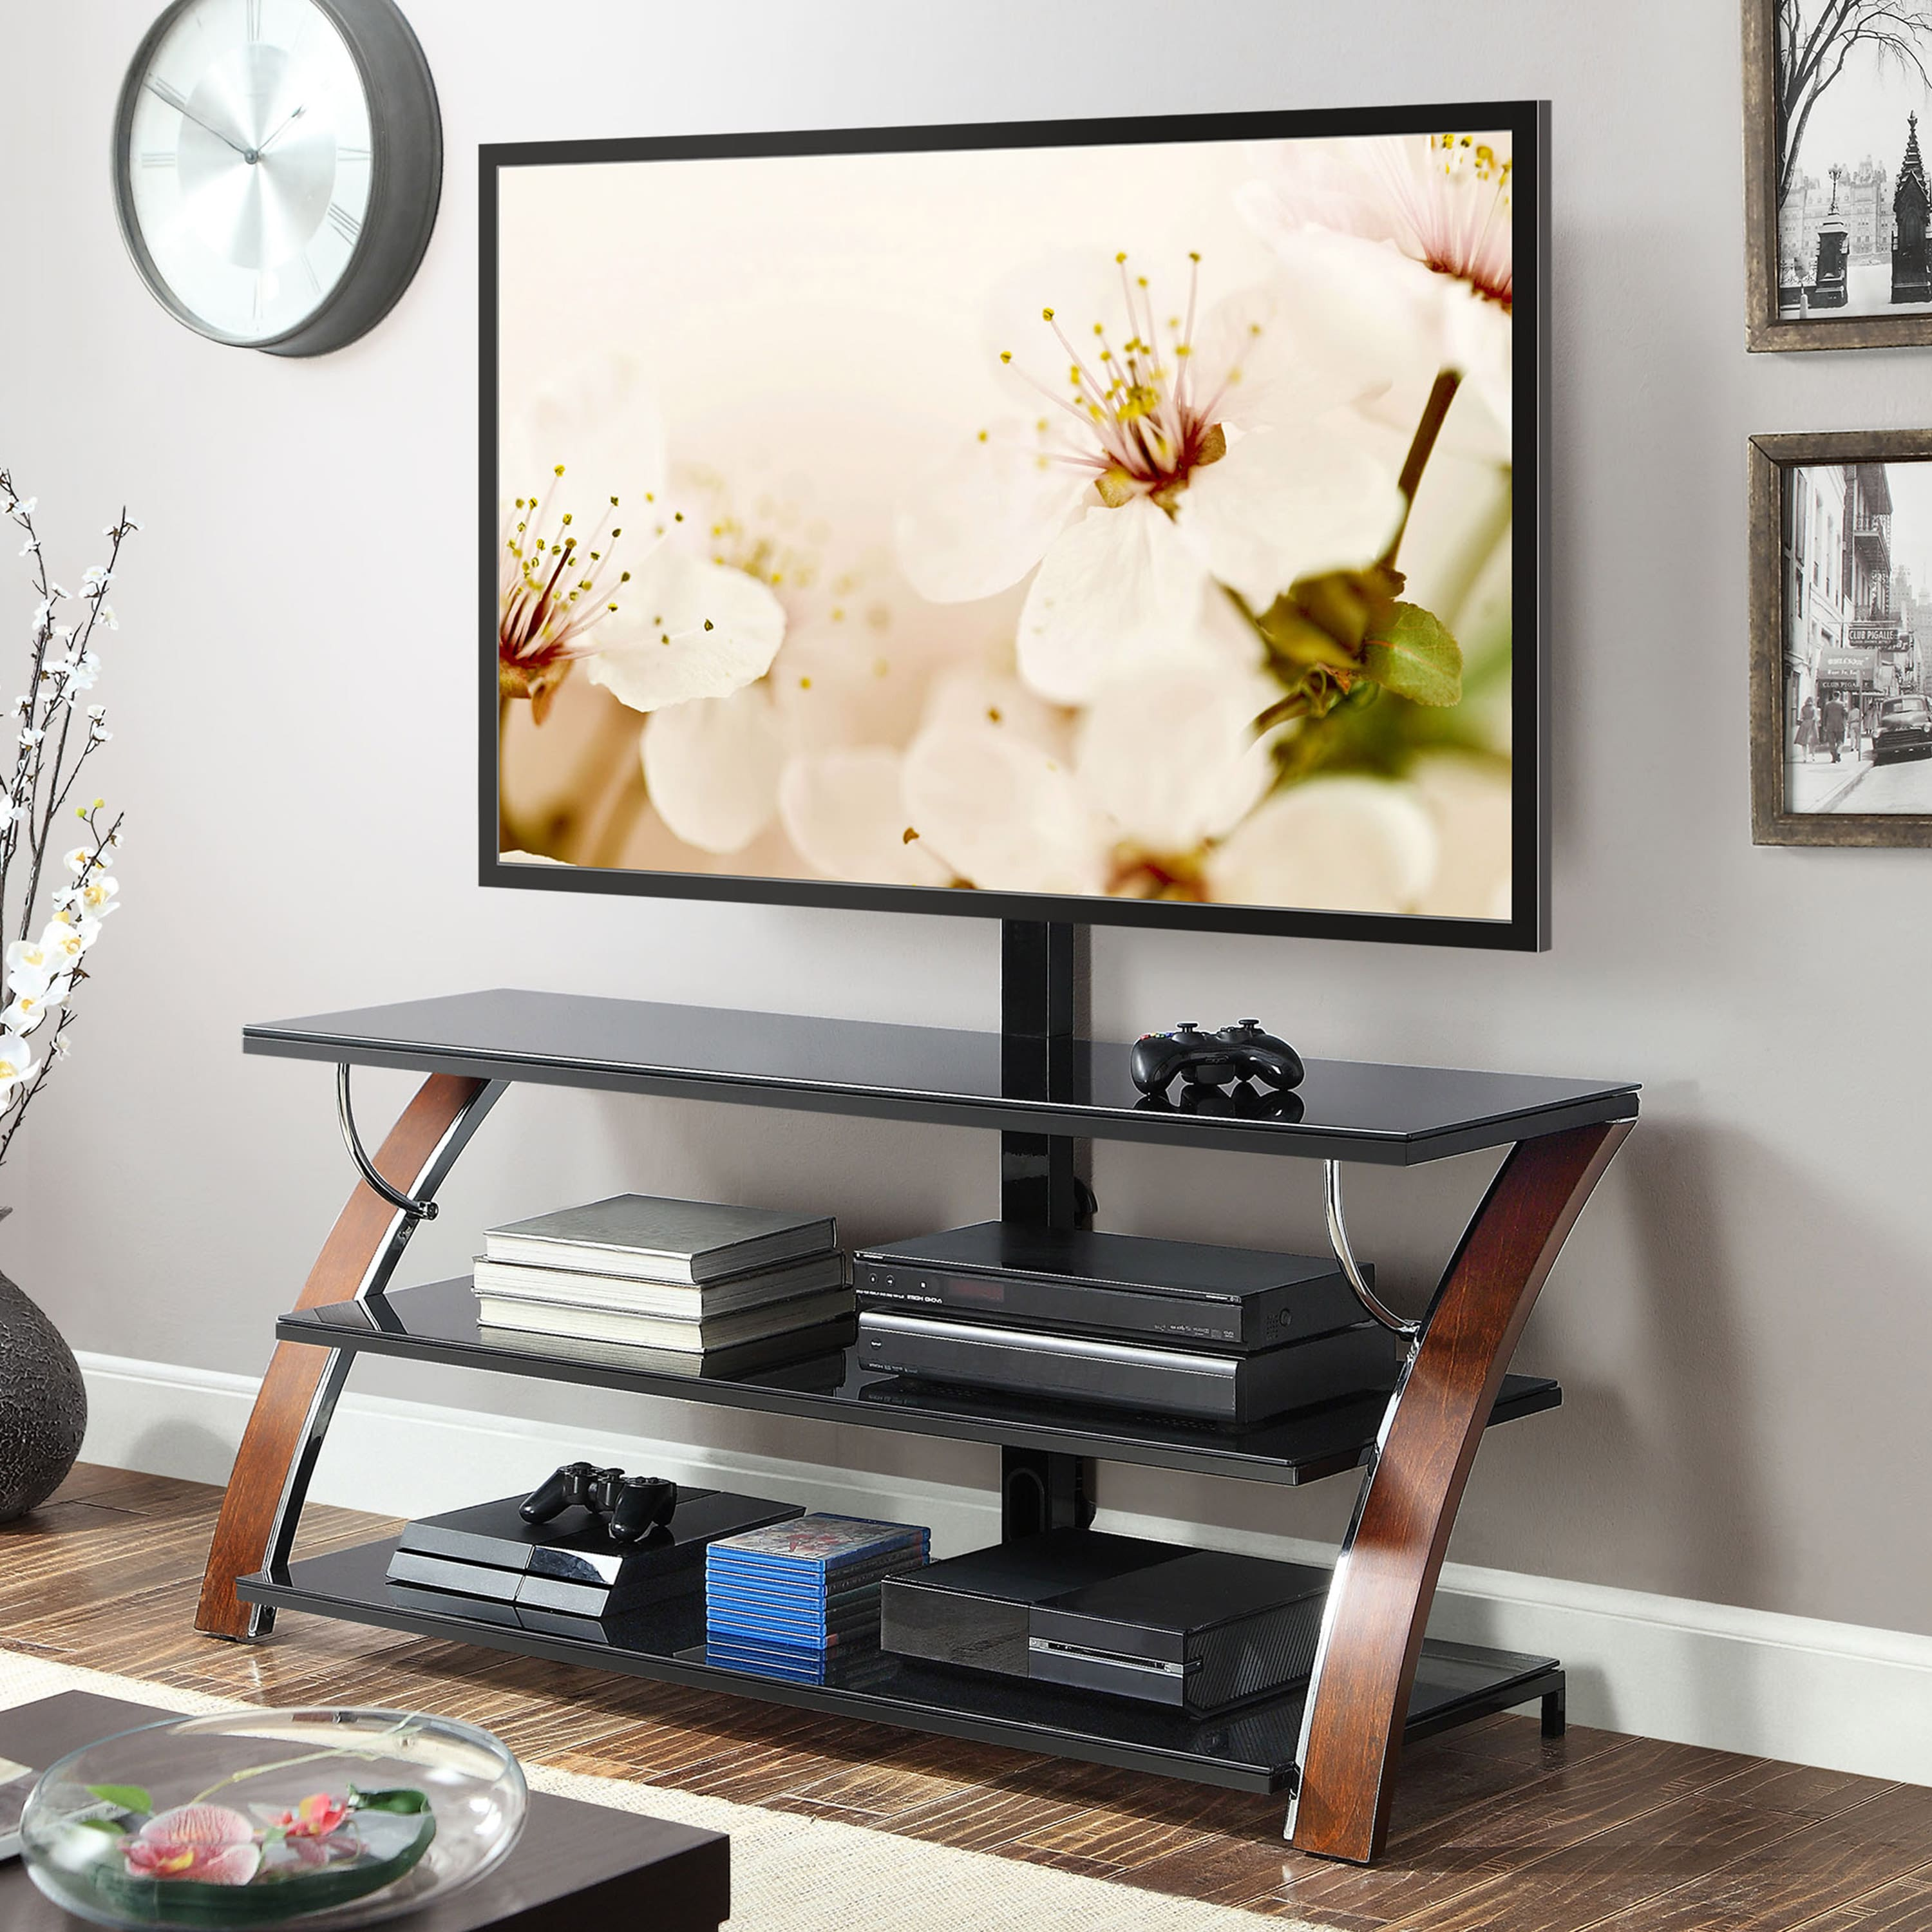 """Whalen Payton 3-in-1 Flat Panel TV Stand (up to 65"""") $105 + Free Shipping"""